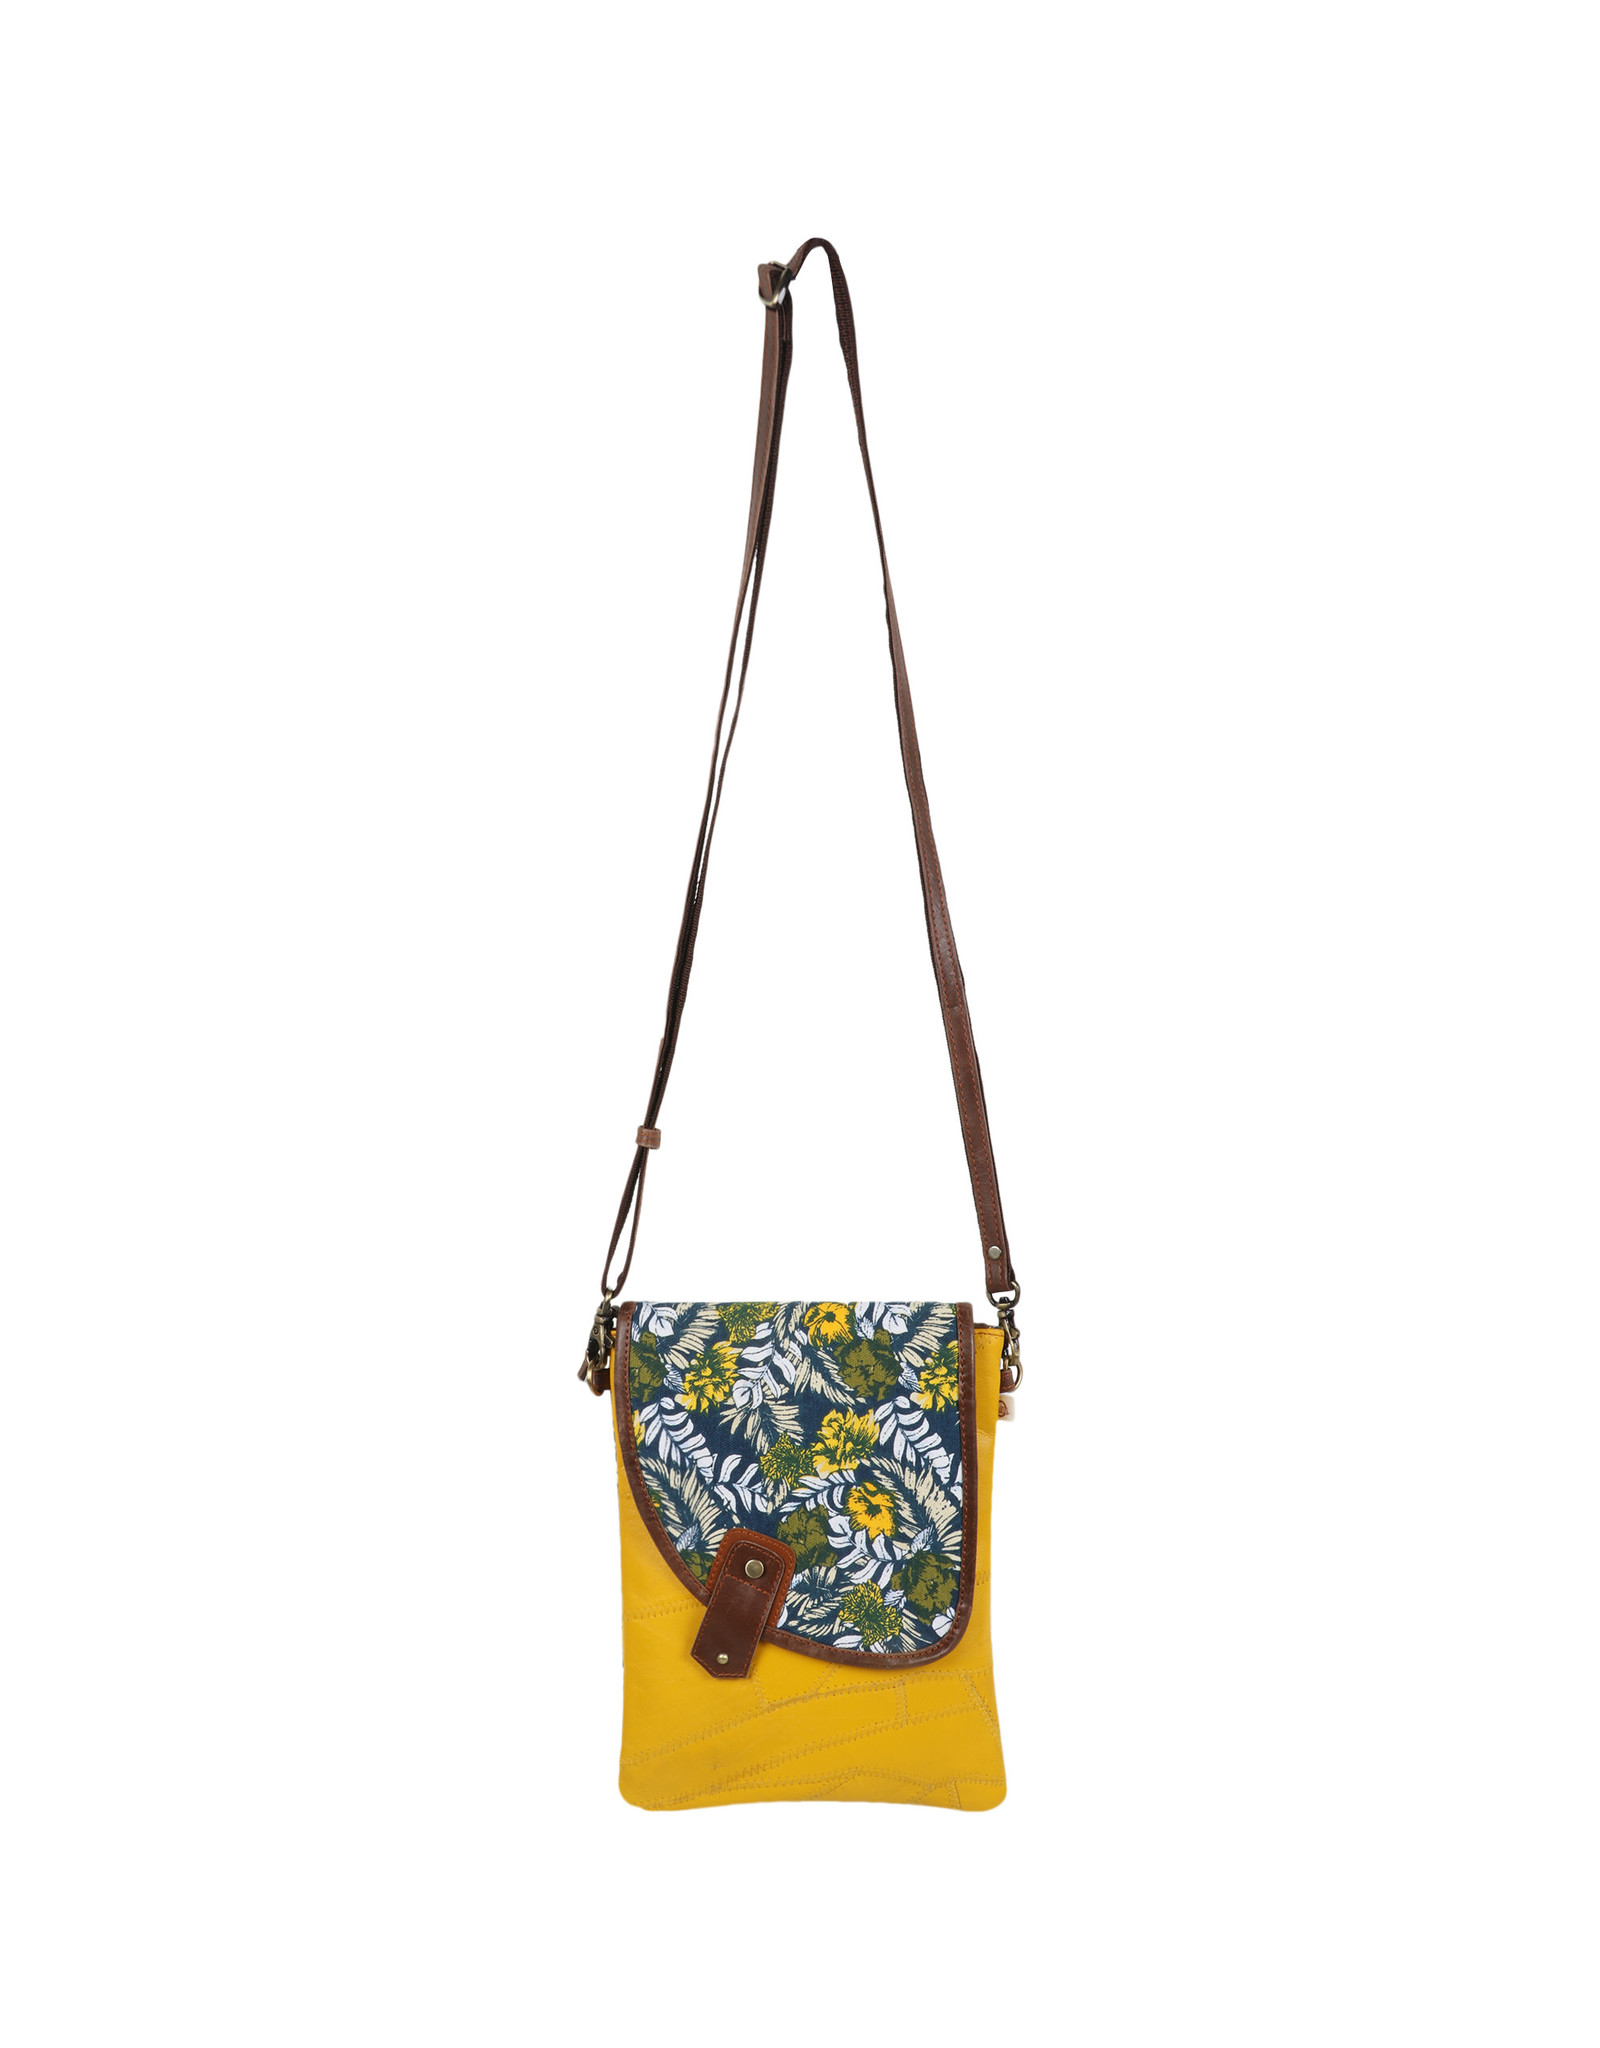 Vann & Co S2V-909 Small Crossbody Bag with Flap